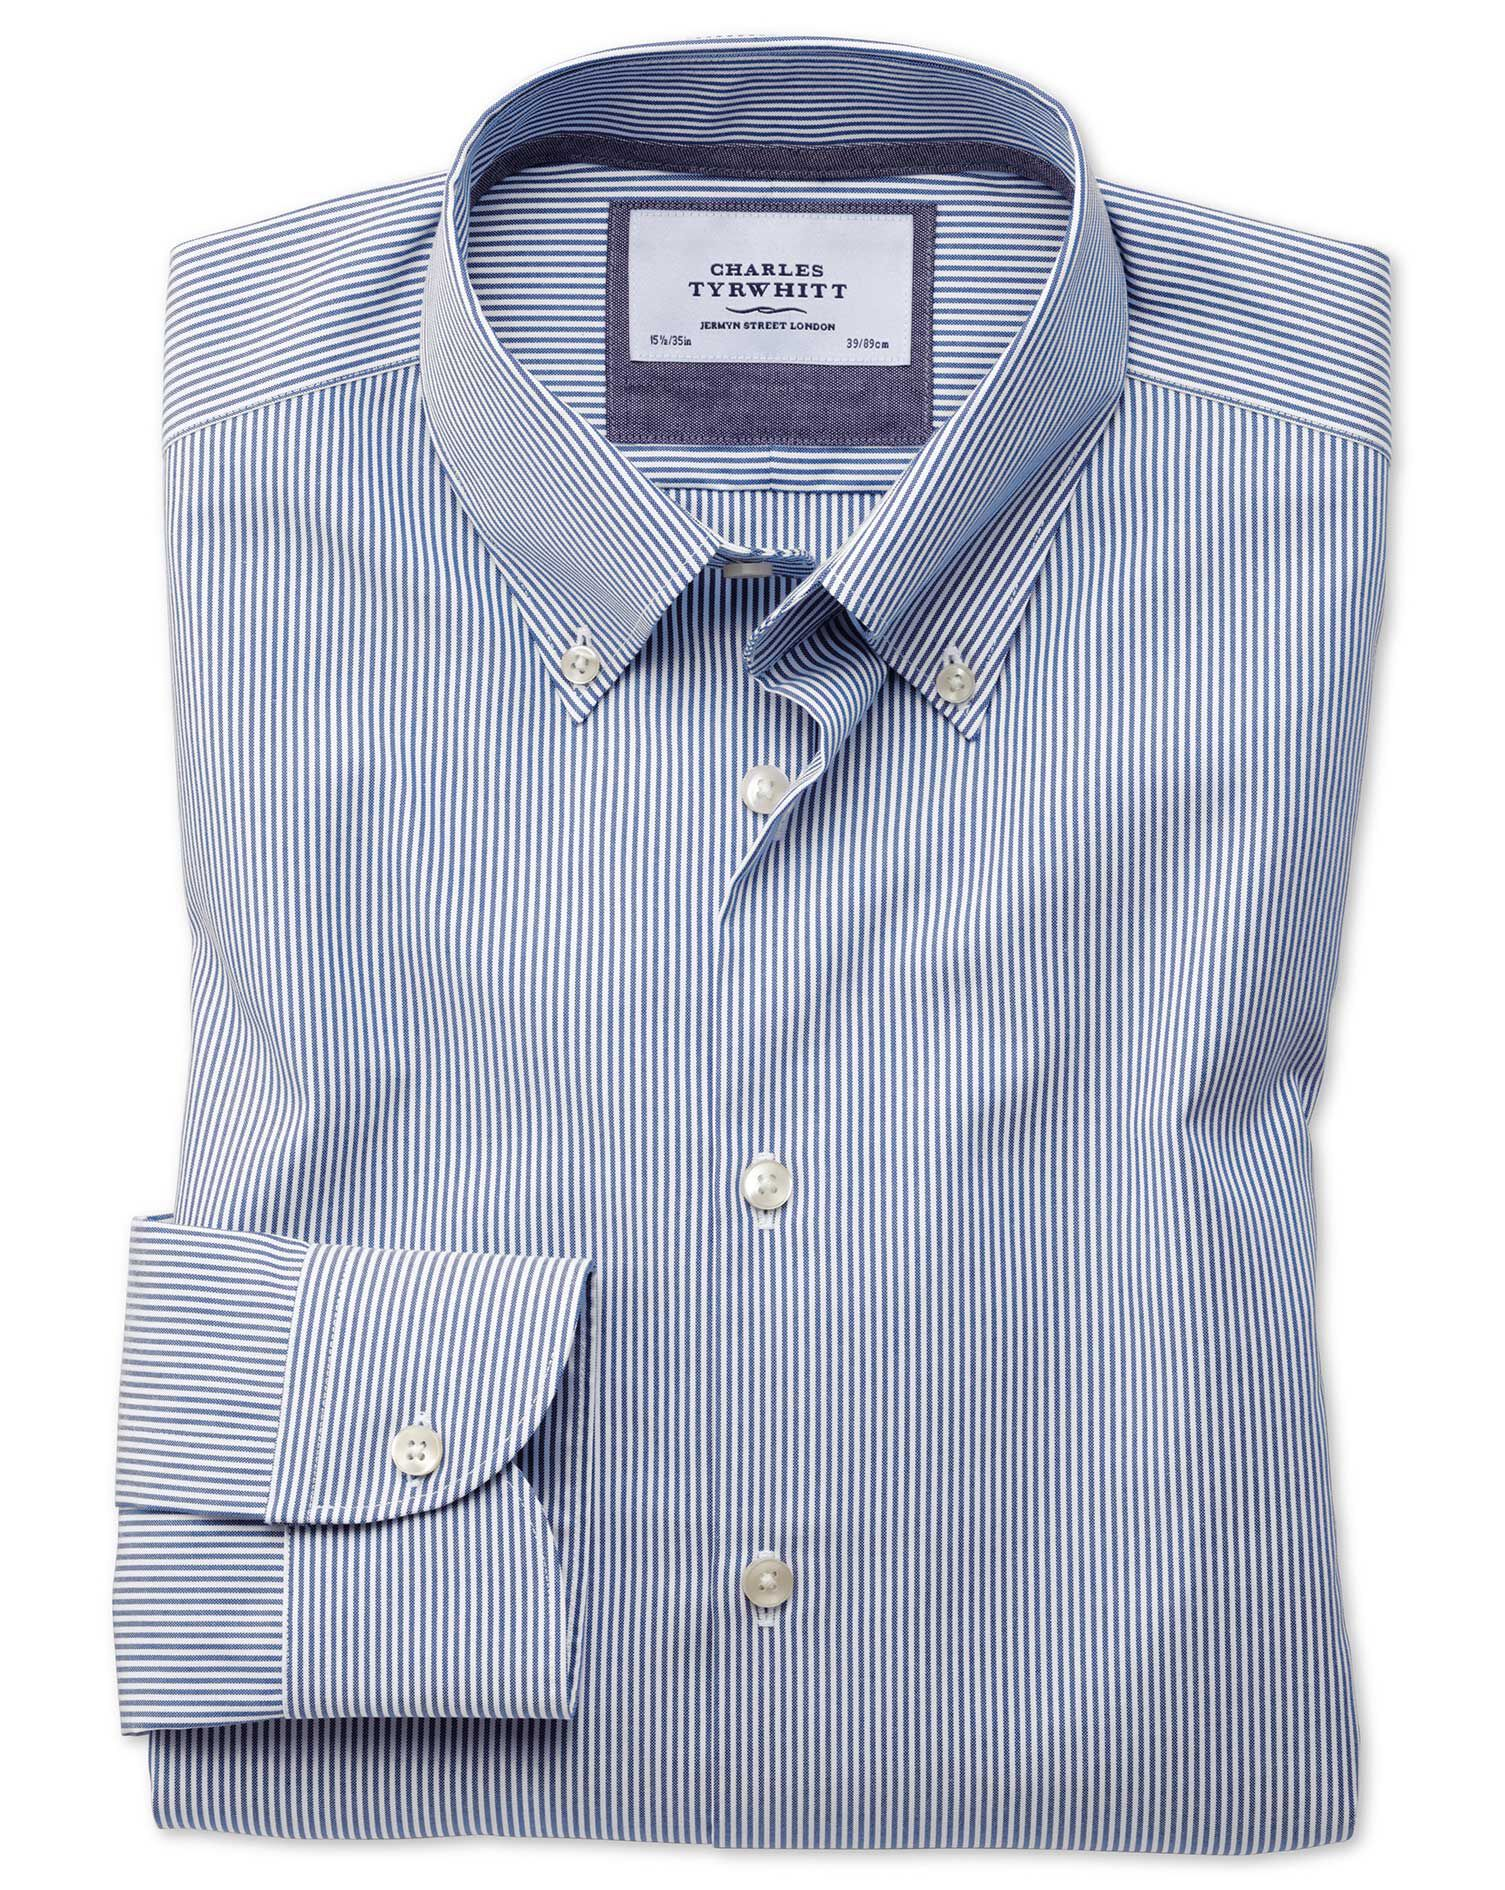 Classic Fit Button-Down Business Casual Non-Iron Blue Stripe Cotton Formal Shirt Single Cuff Size 18